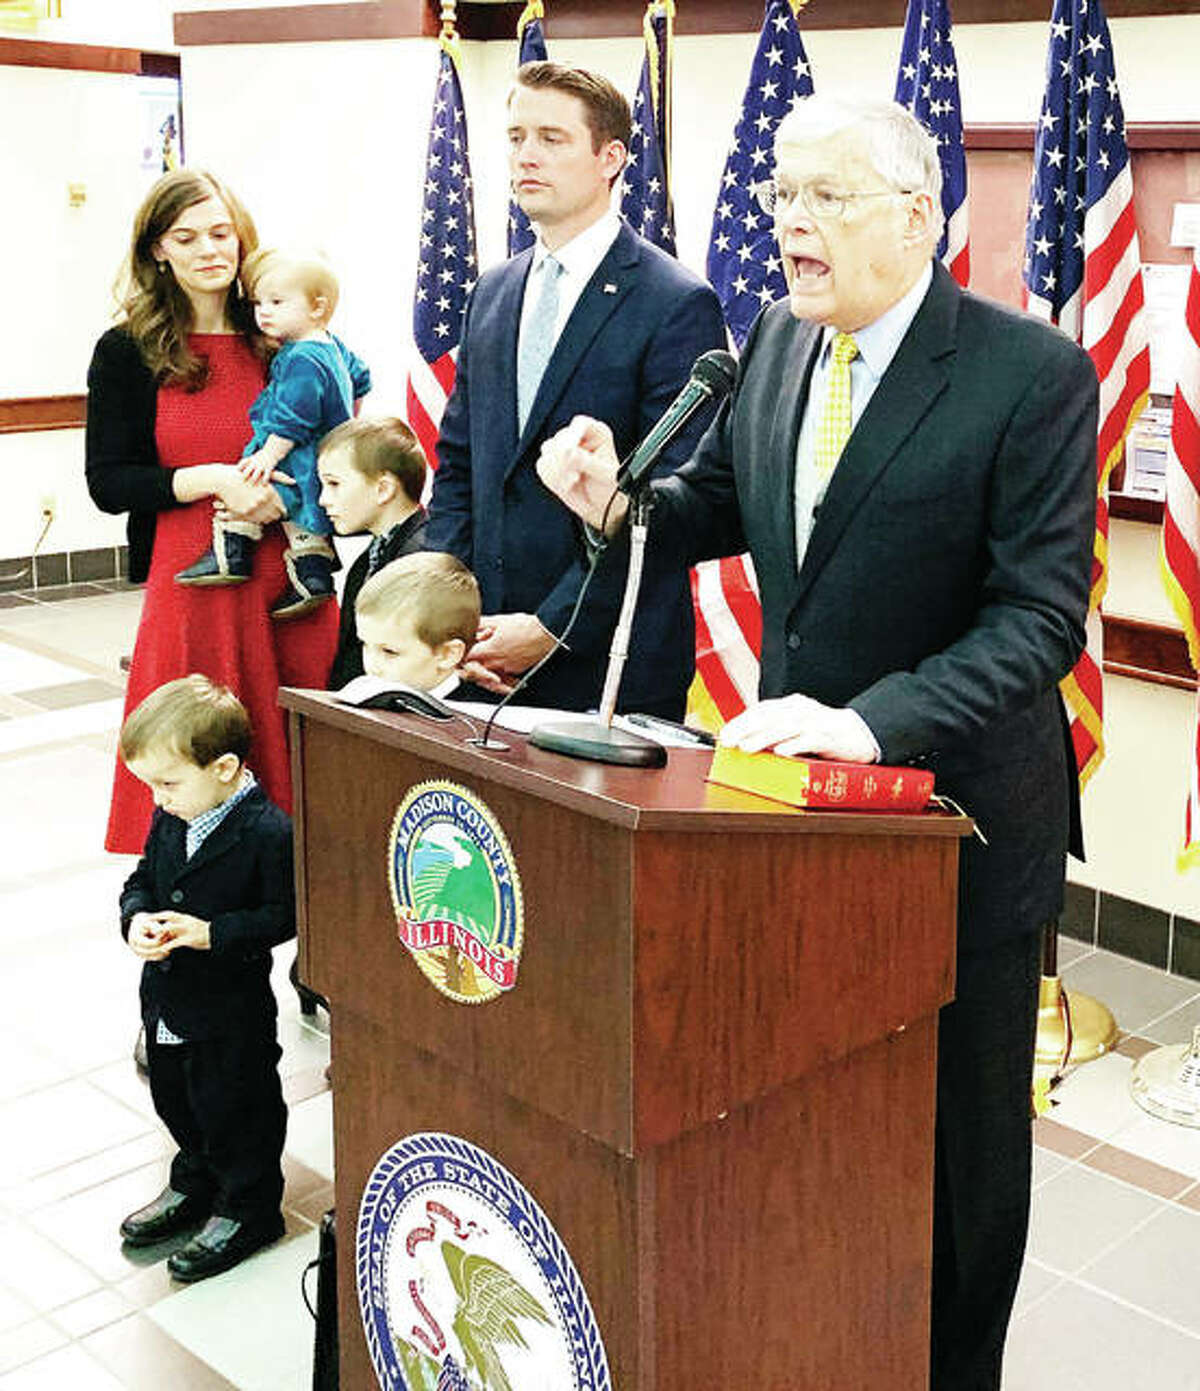 Former Madison County State's Attorney and Illinois State Senator Bill Haine speaks before swearing in his son, Thomas Haine, as the new Madison County State's Attorney during a ceremony Tuesday at the Madison County Administration Building. Because of COVID, the swearing in of several officials was spread out to every half hour.